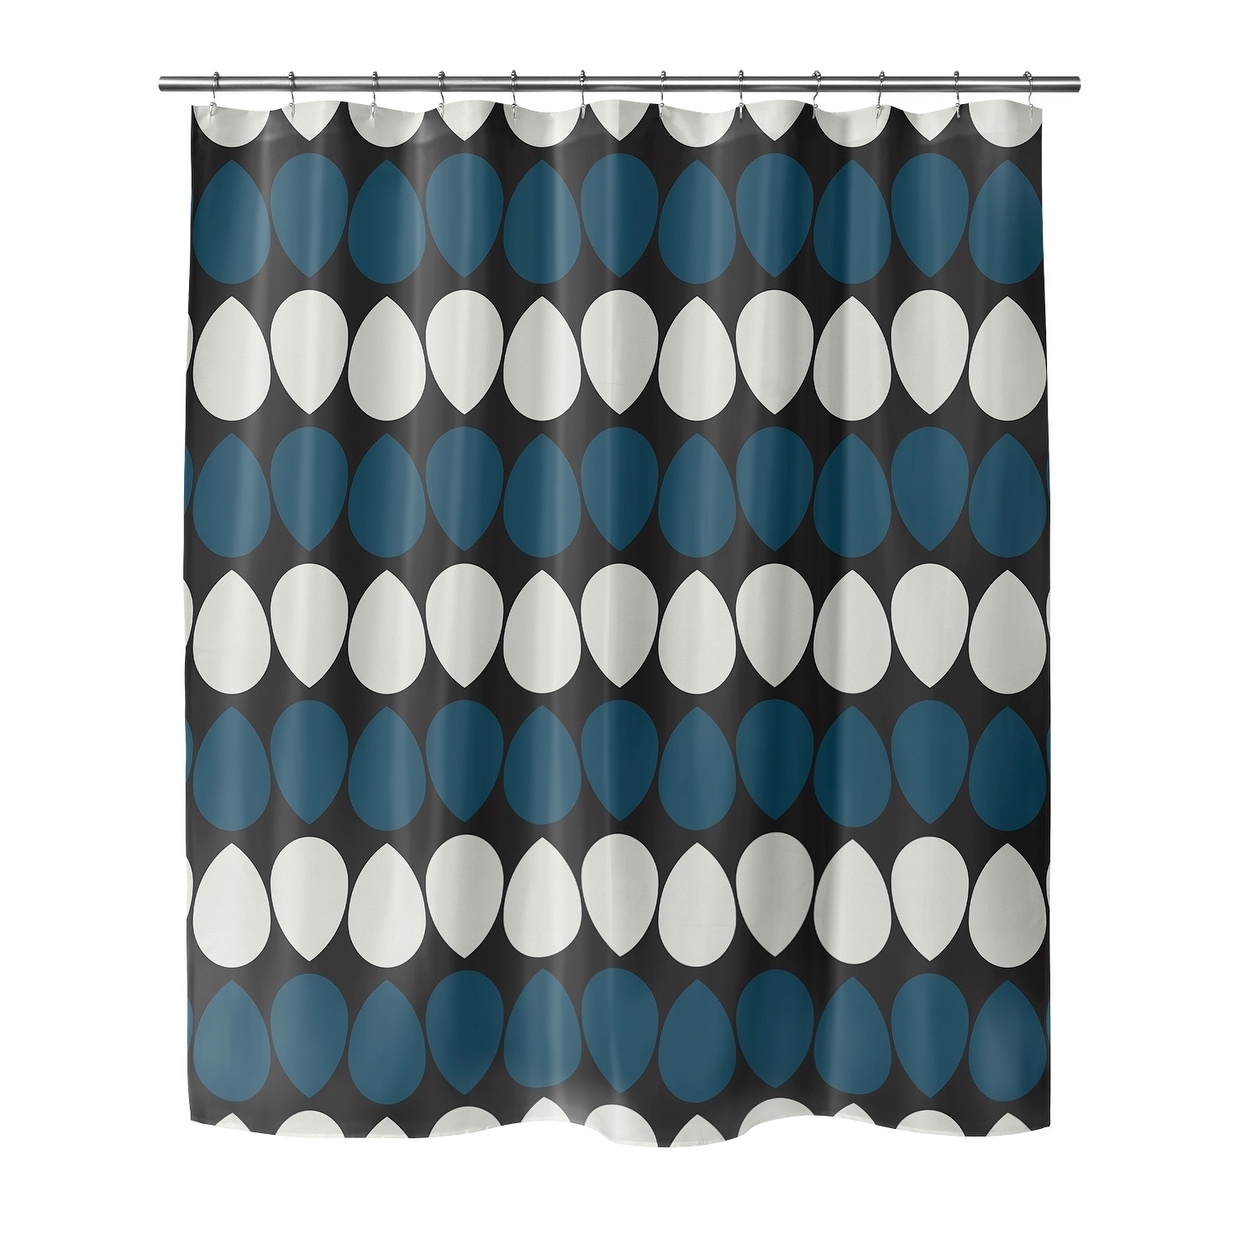 Shop Black Friday Deals On Wilma Dark Blue Shower Curtain By Kavka Designs On Sale Overstock 28284889